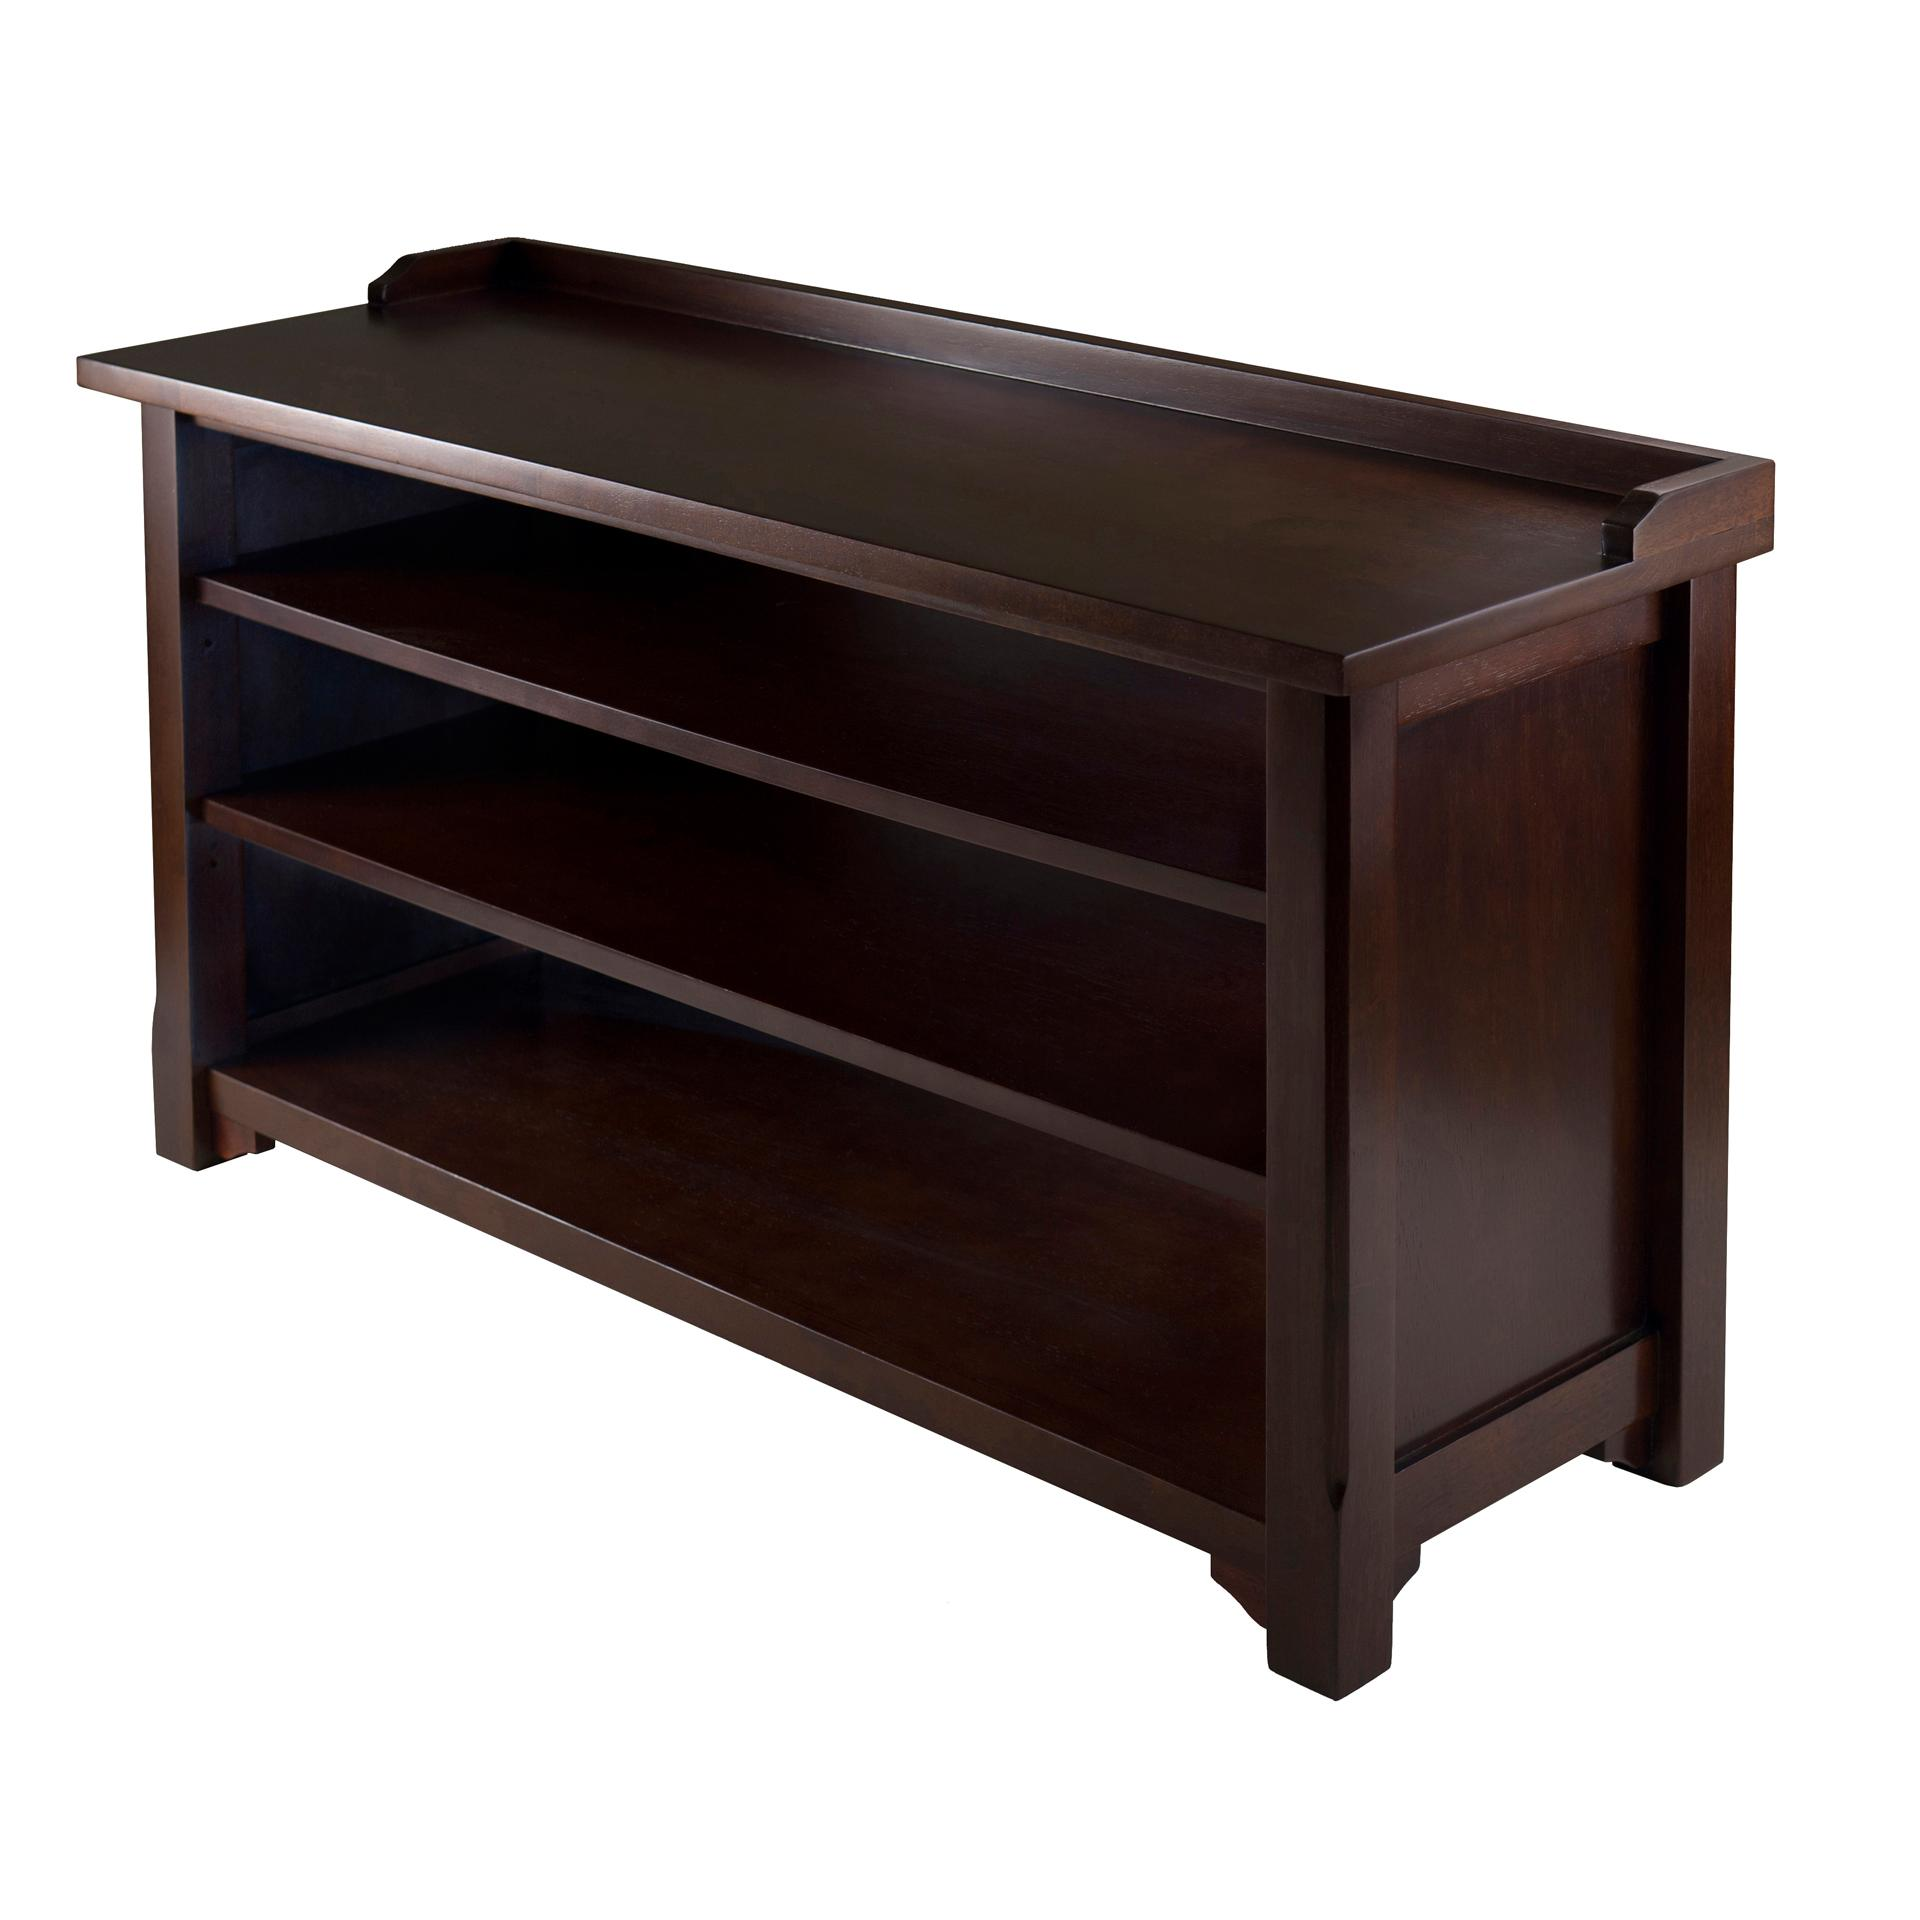 Winsome Wood Dayton Storage Hall Bench with Shelves: Amazon.ca ...